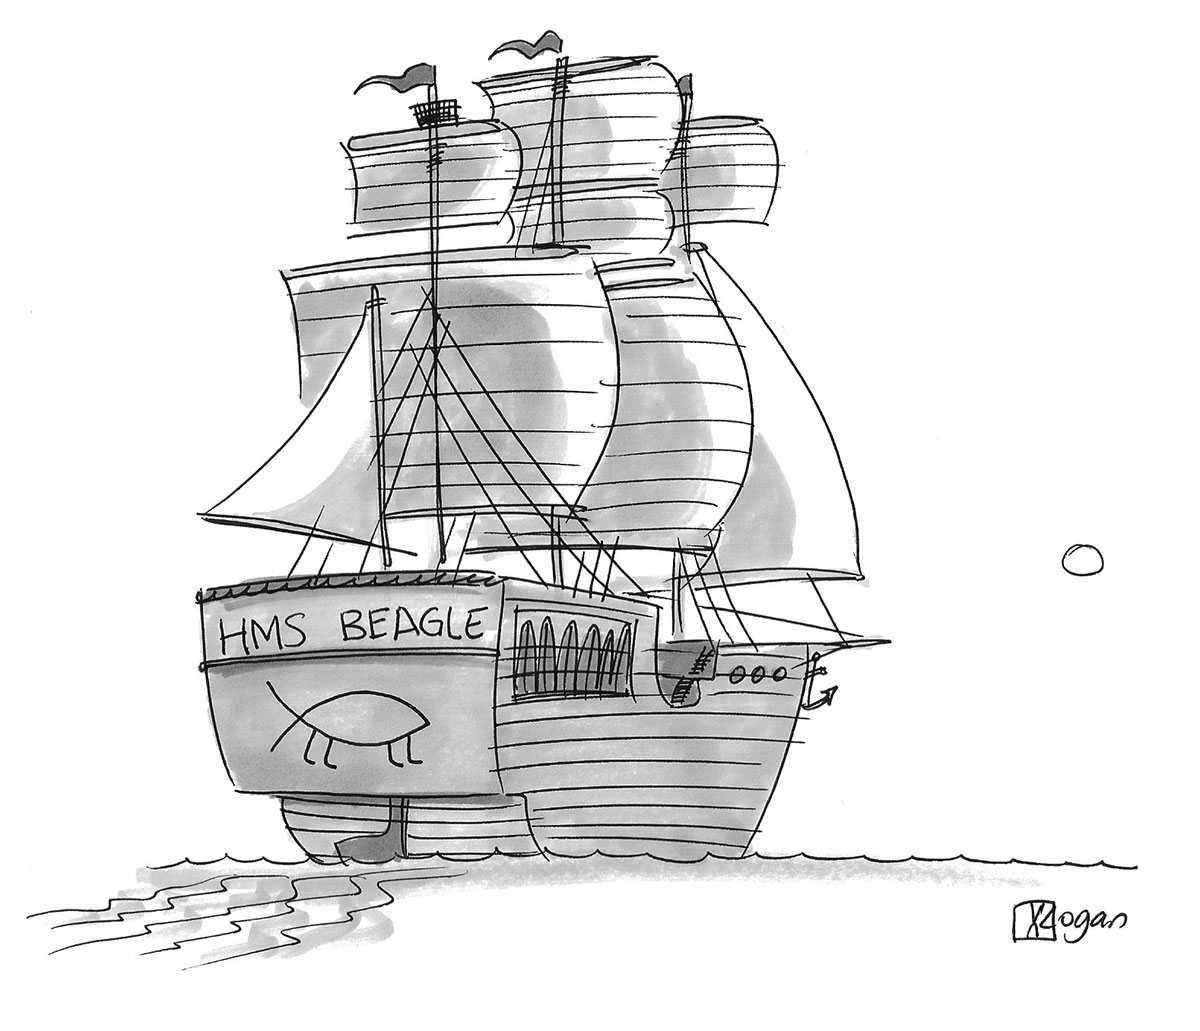 (The HMS Beagle ship has a Darwin Fish on the back.)